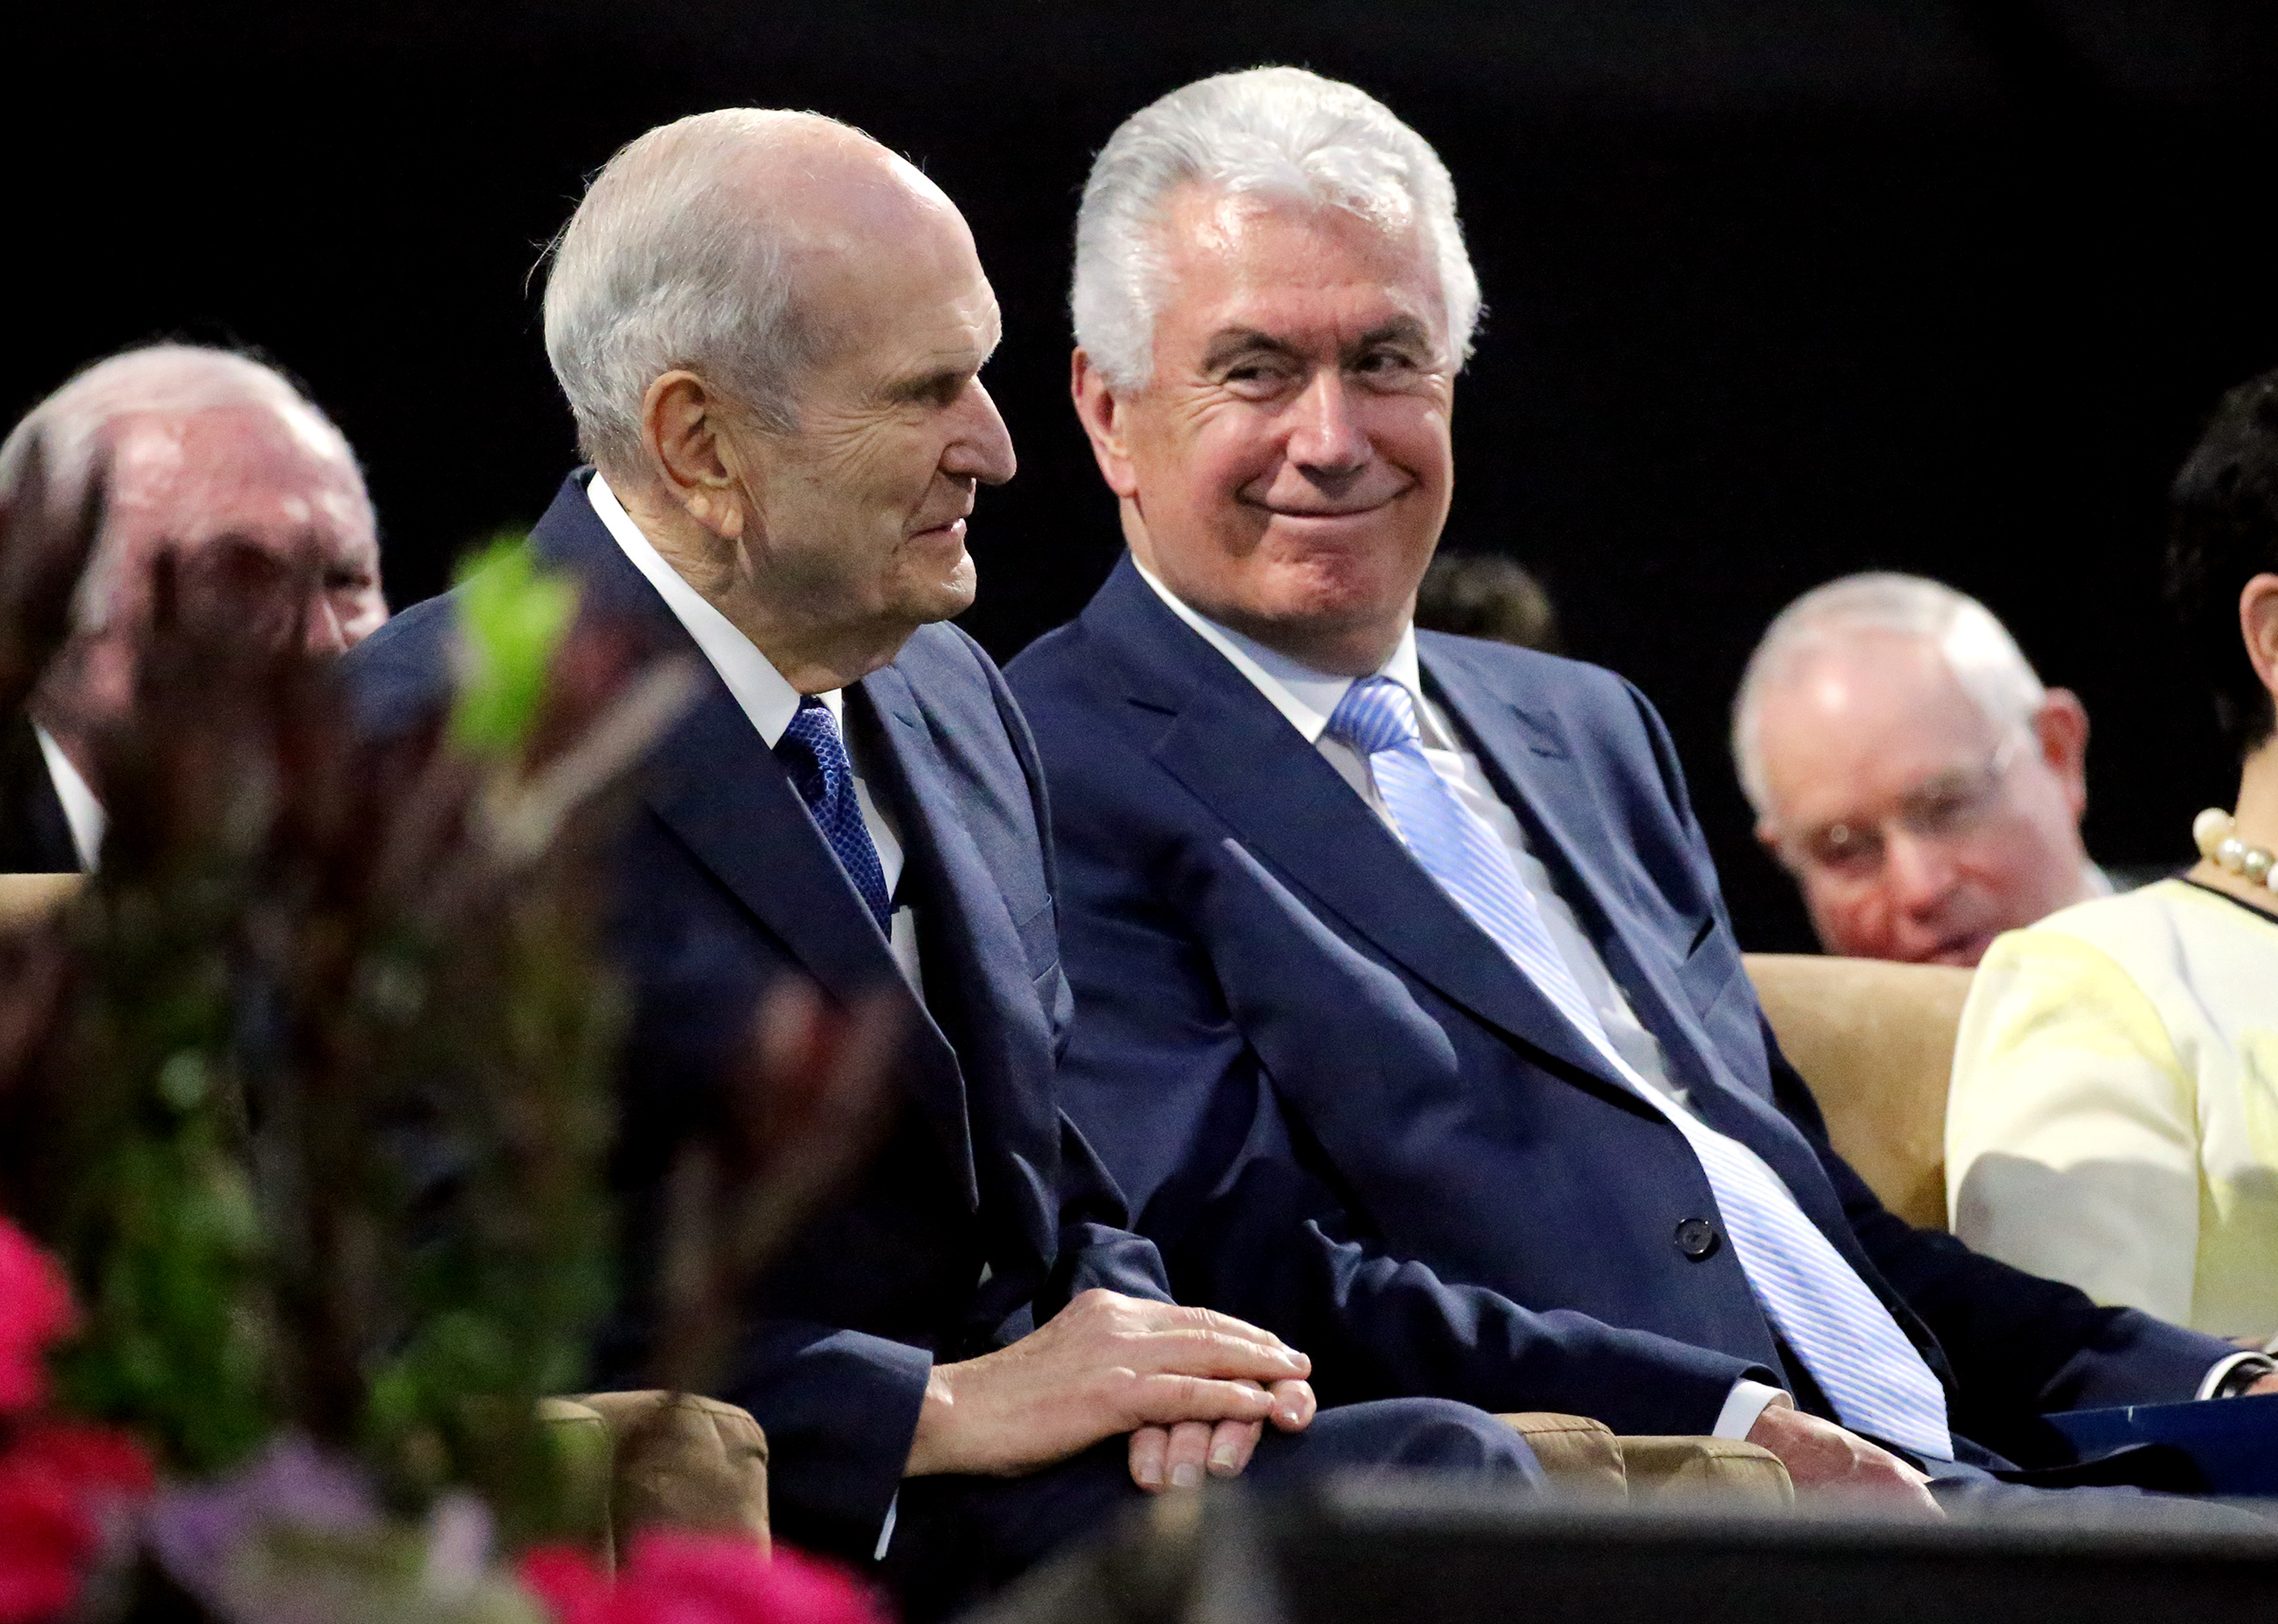 President Russell M. Nelson and Elder Dieter F. Uchtdorf of the Quorum of the Twelve Apostles share a smile during the devotional at the Amway Center in Orlando, Florida, on Sunday, June 9, 2019.